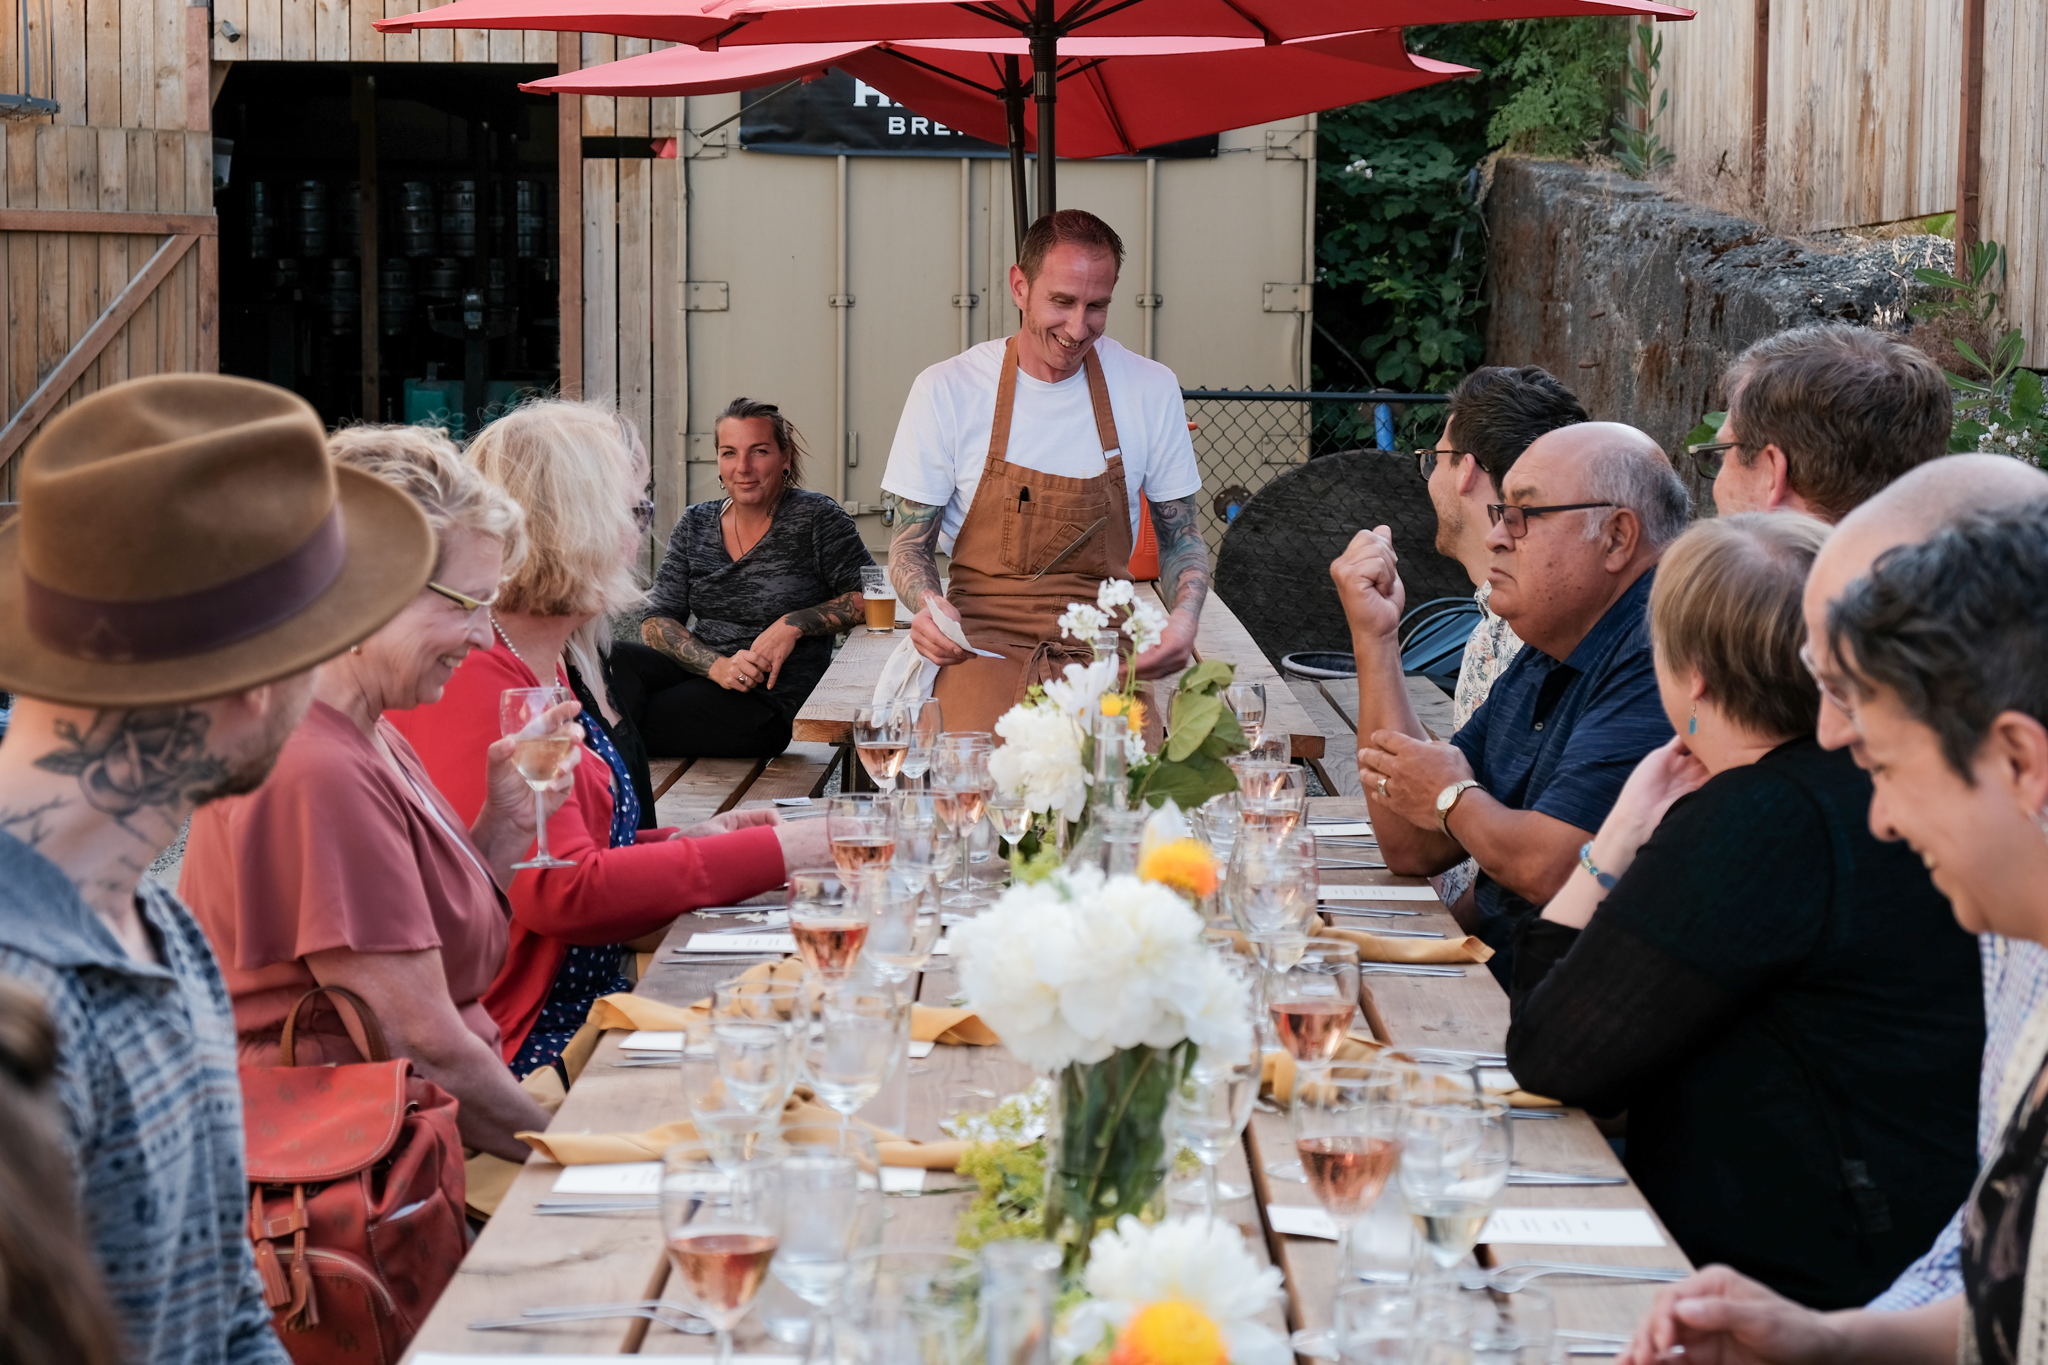 Chef Jon Maley and his guests, ChūcH Restaurant pop up event, 10 June 2015.